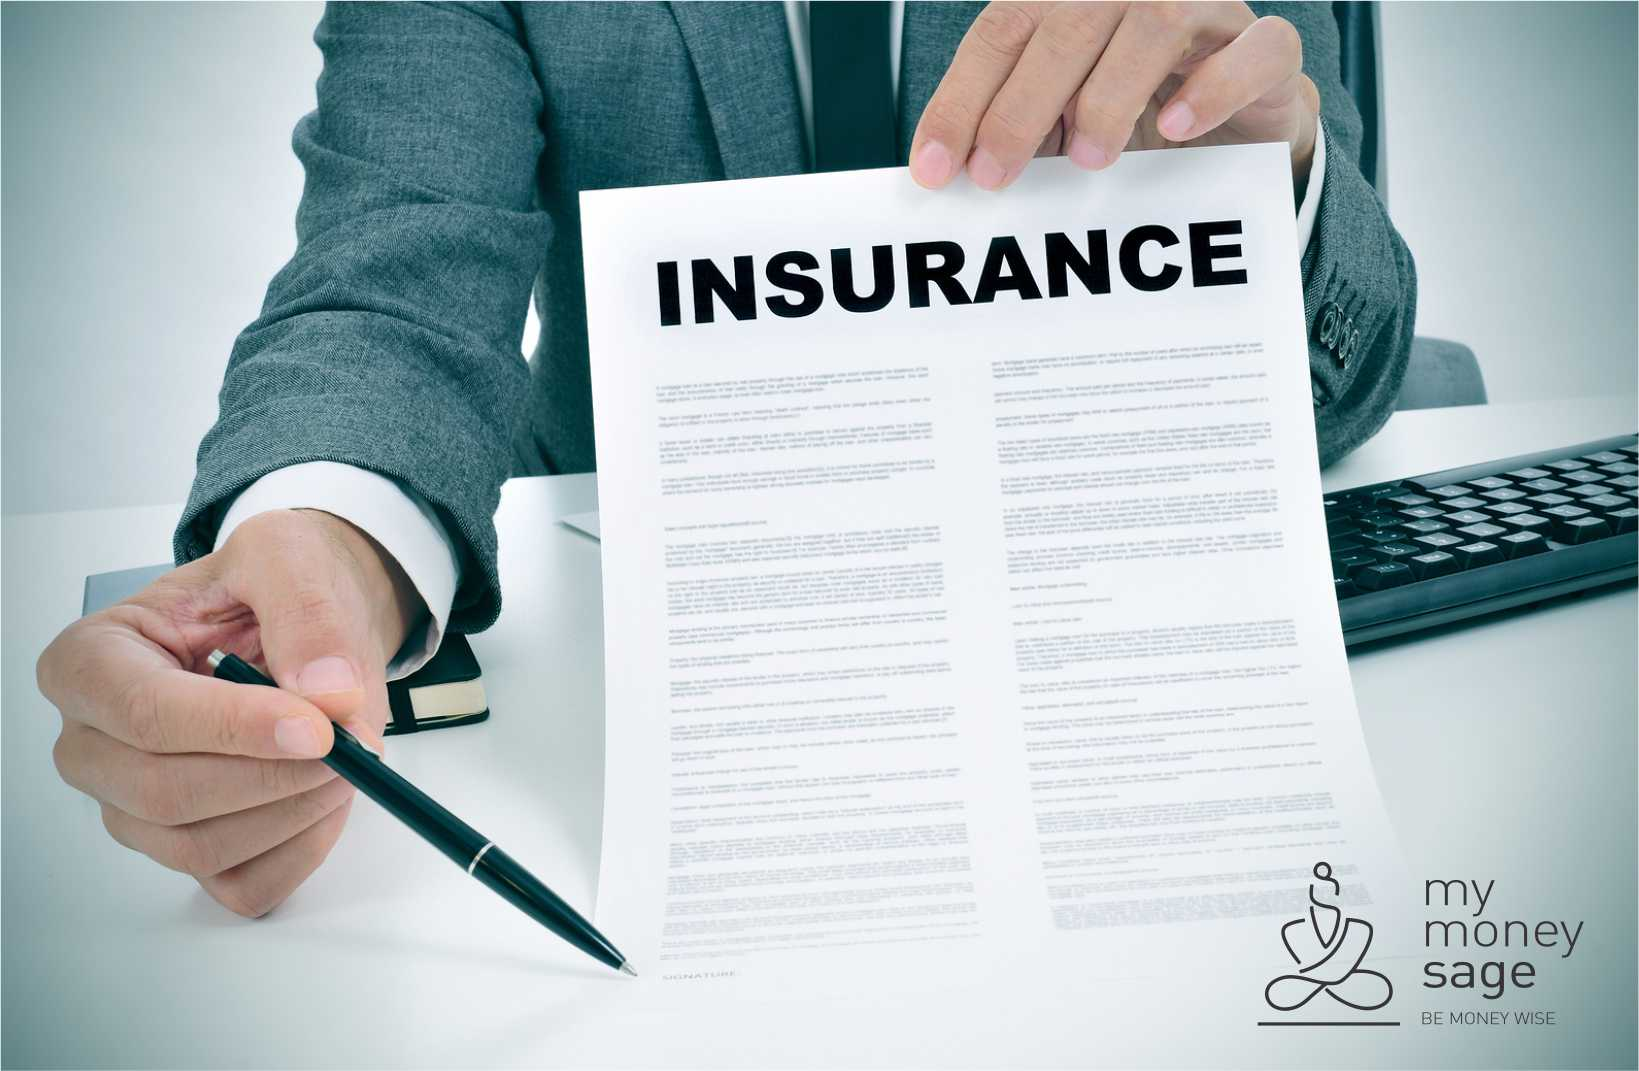 How to assess an insurance company before you buy a policy